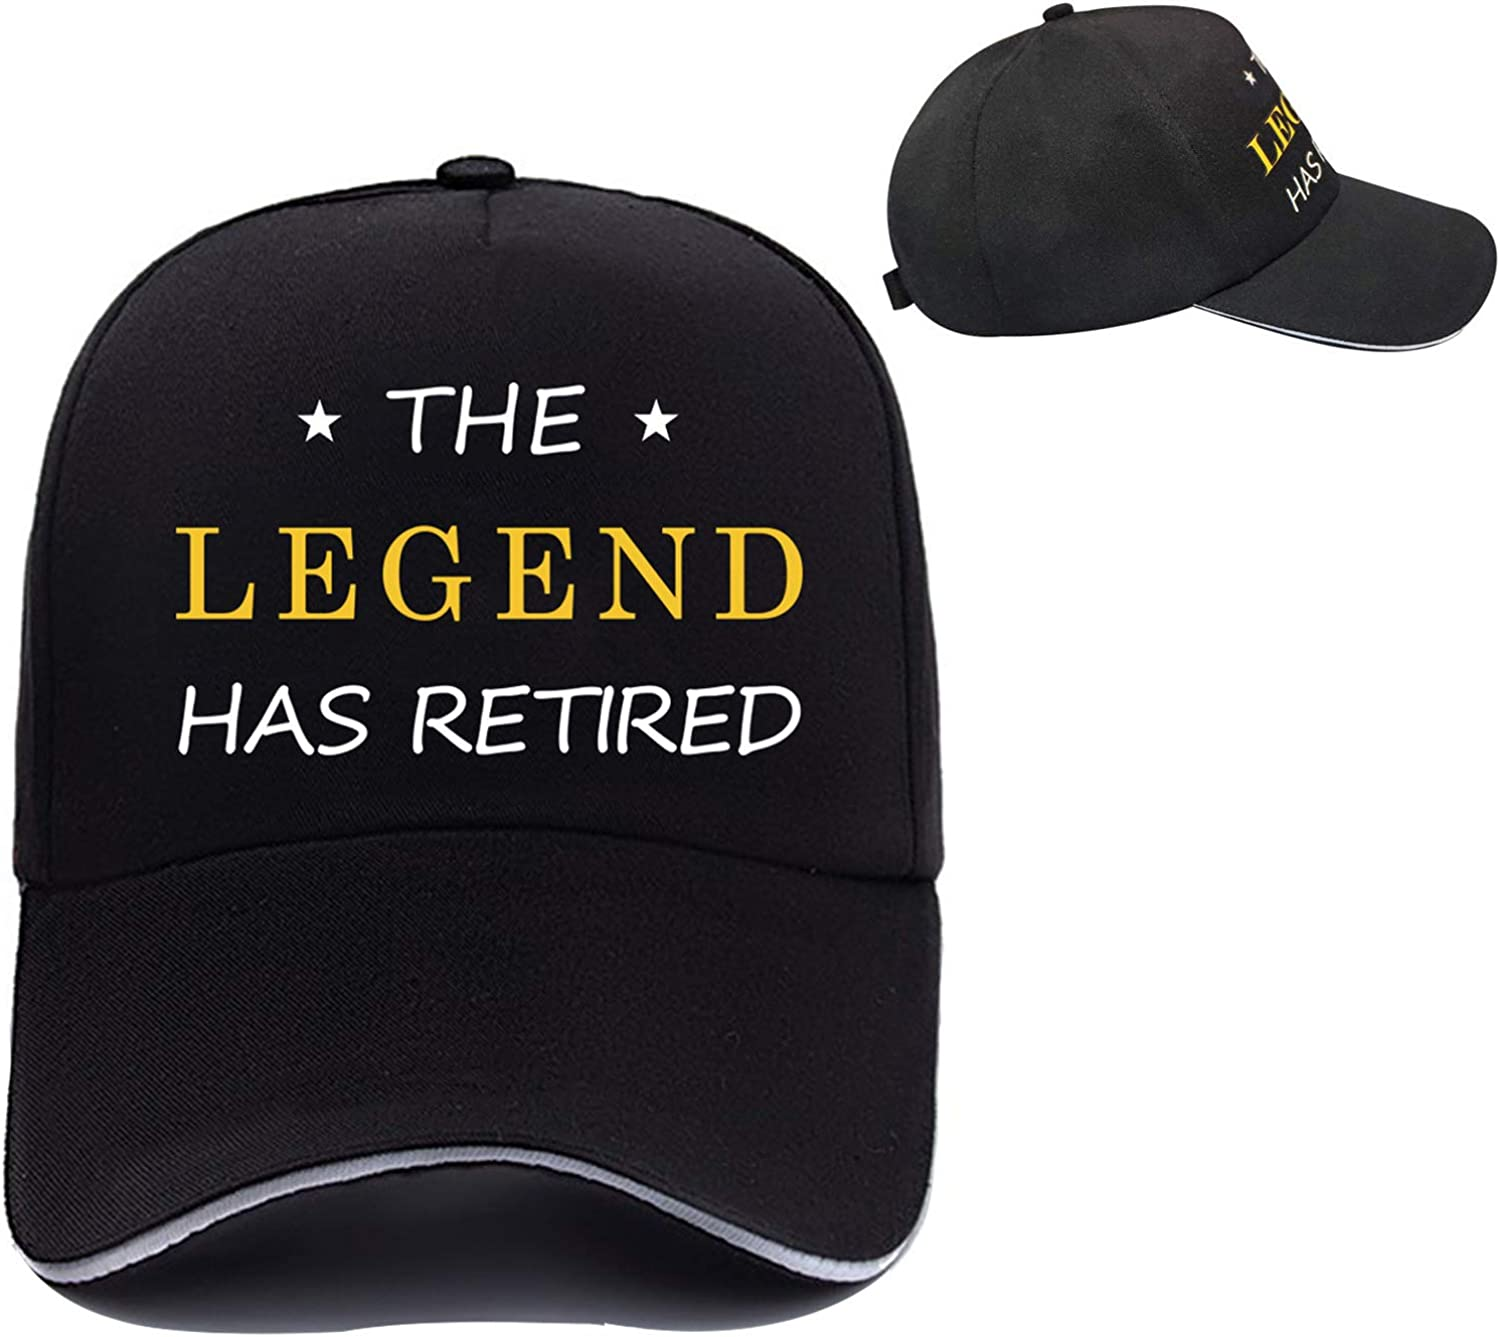 Retired Baseball Hat, Retirement Party Supplies, Retirement Gifts for Dads Boss-The Legend Has Retired Black